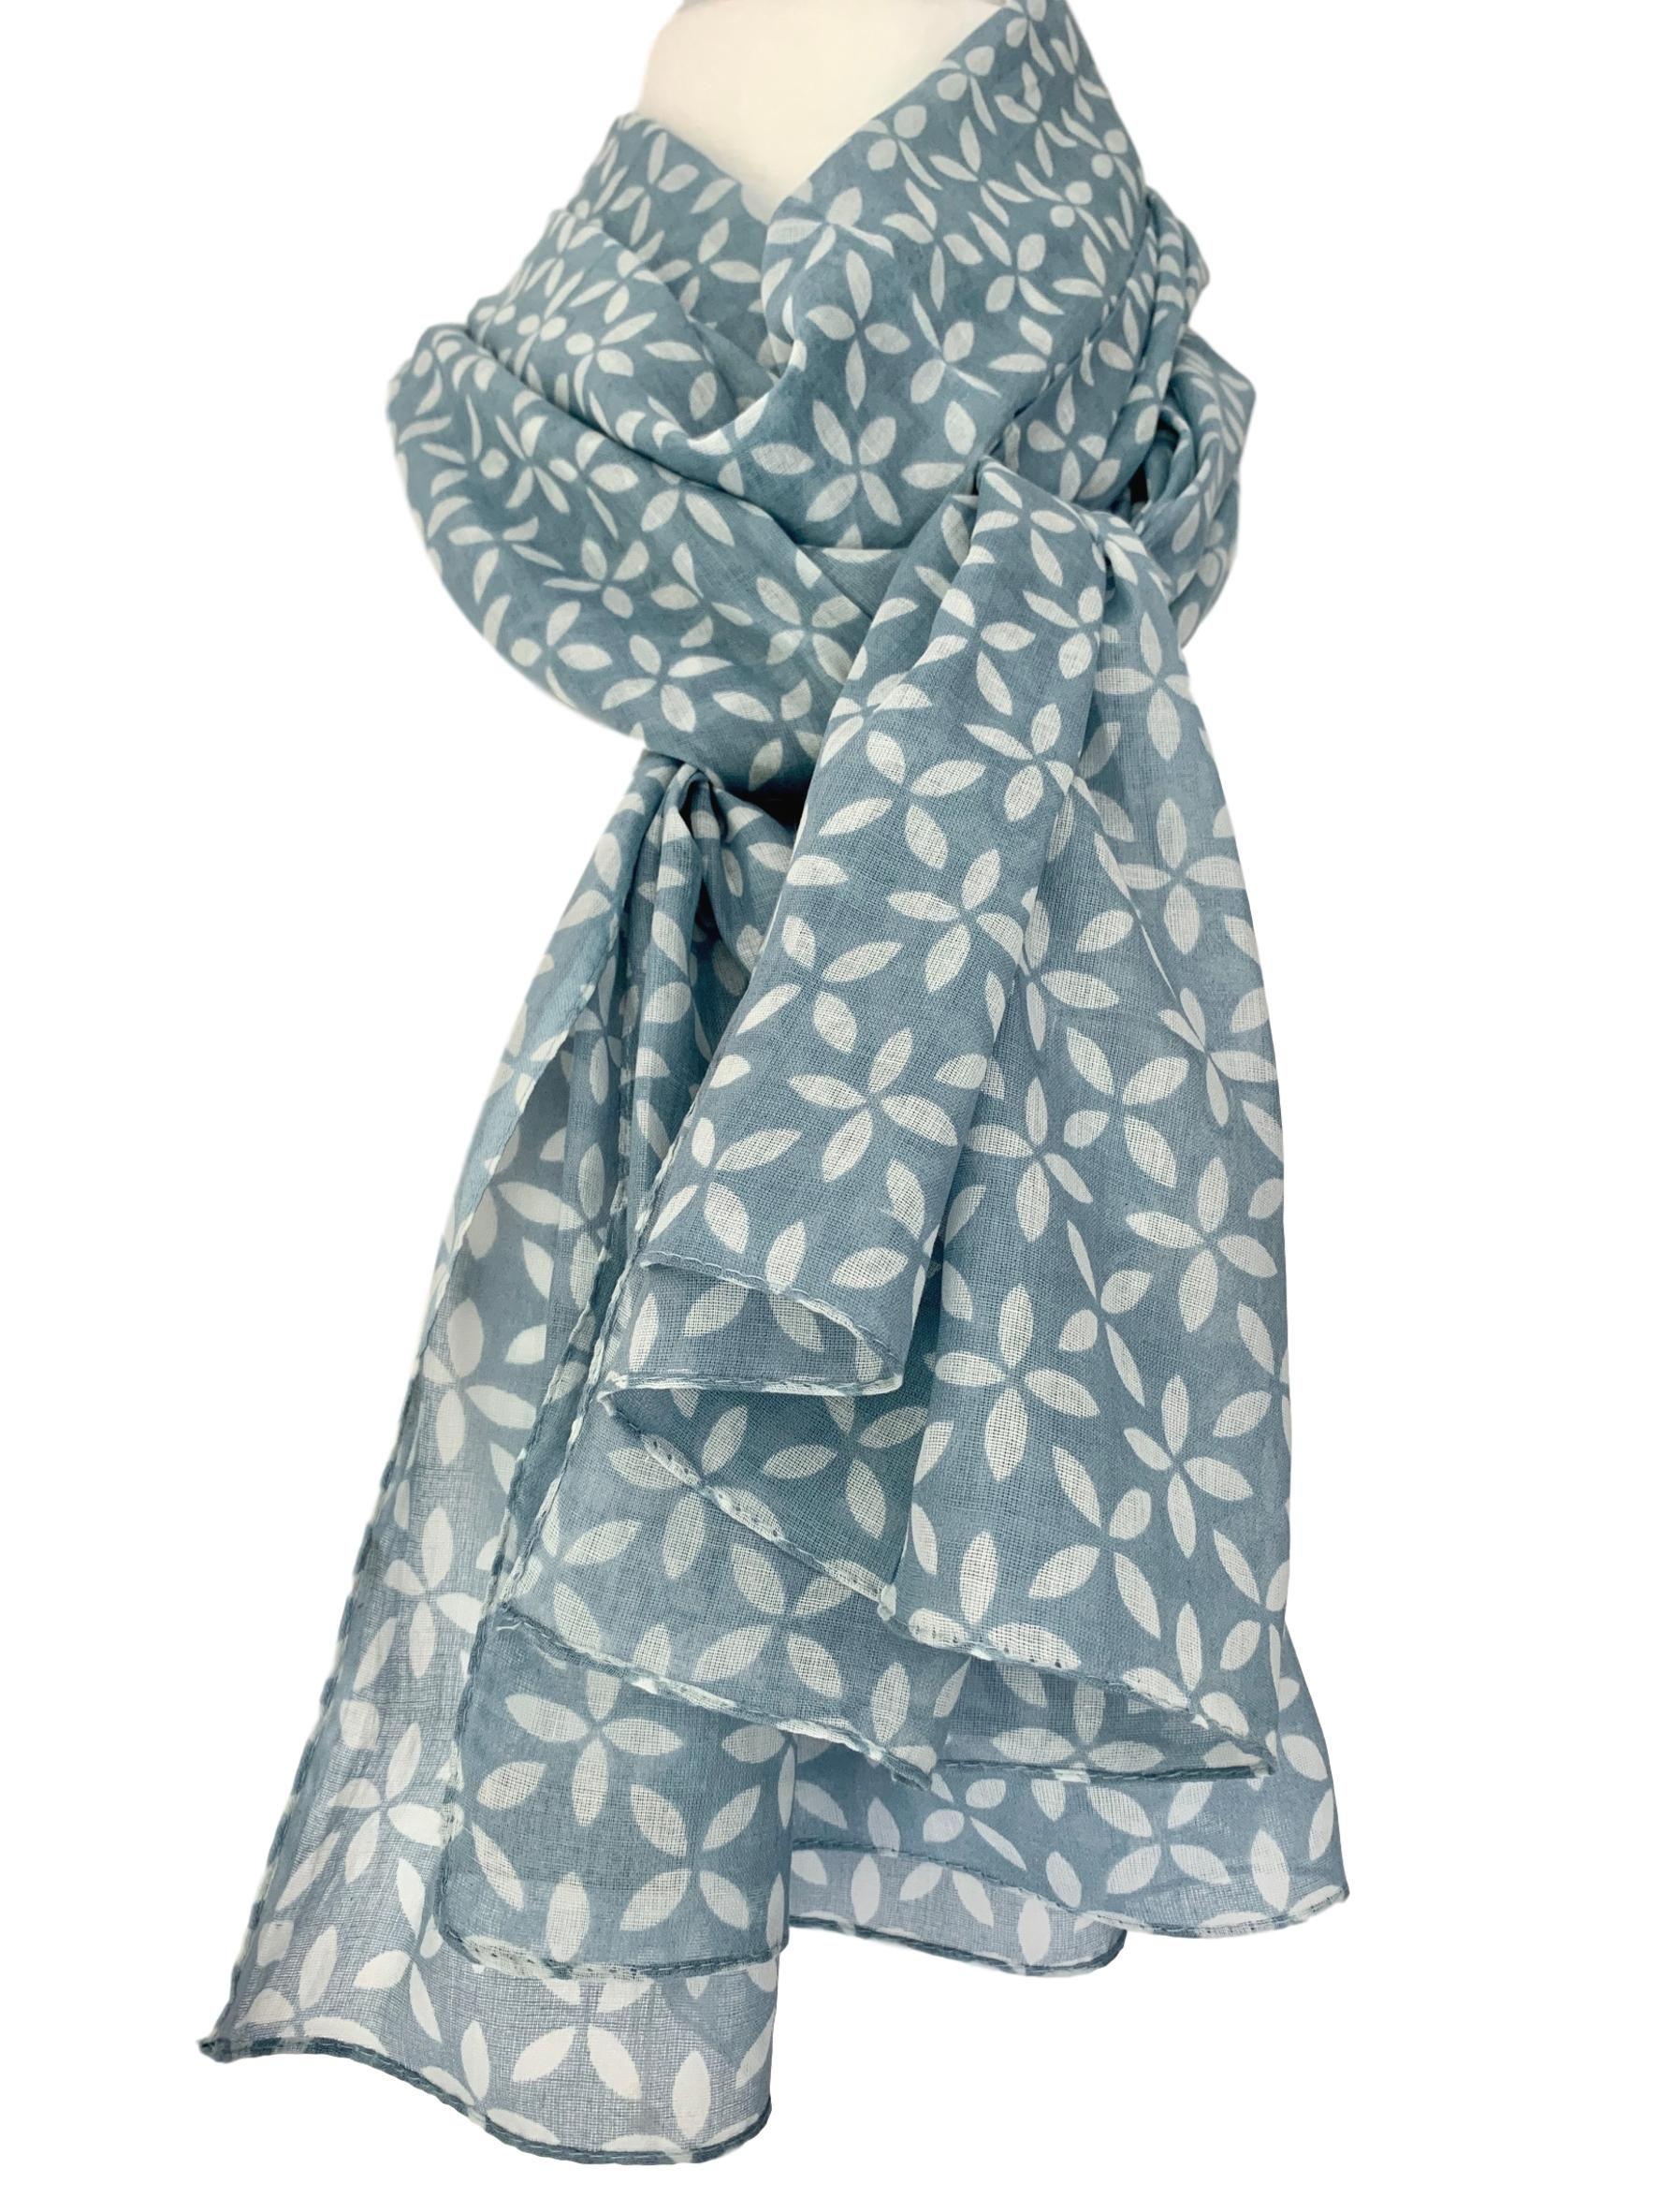 a2332c8f79d90 Large blue scarf with a white floral print. £13.99 with Free UK Delivery The